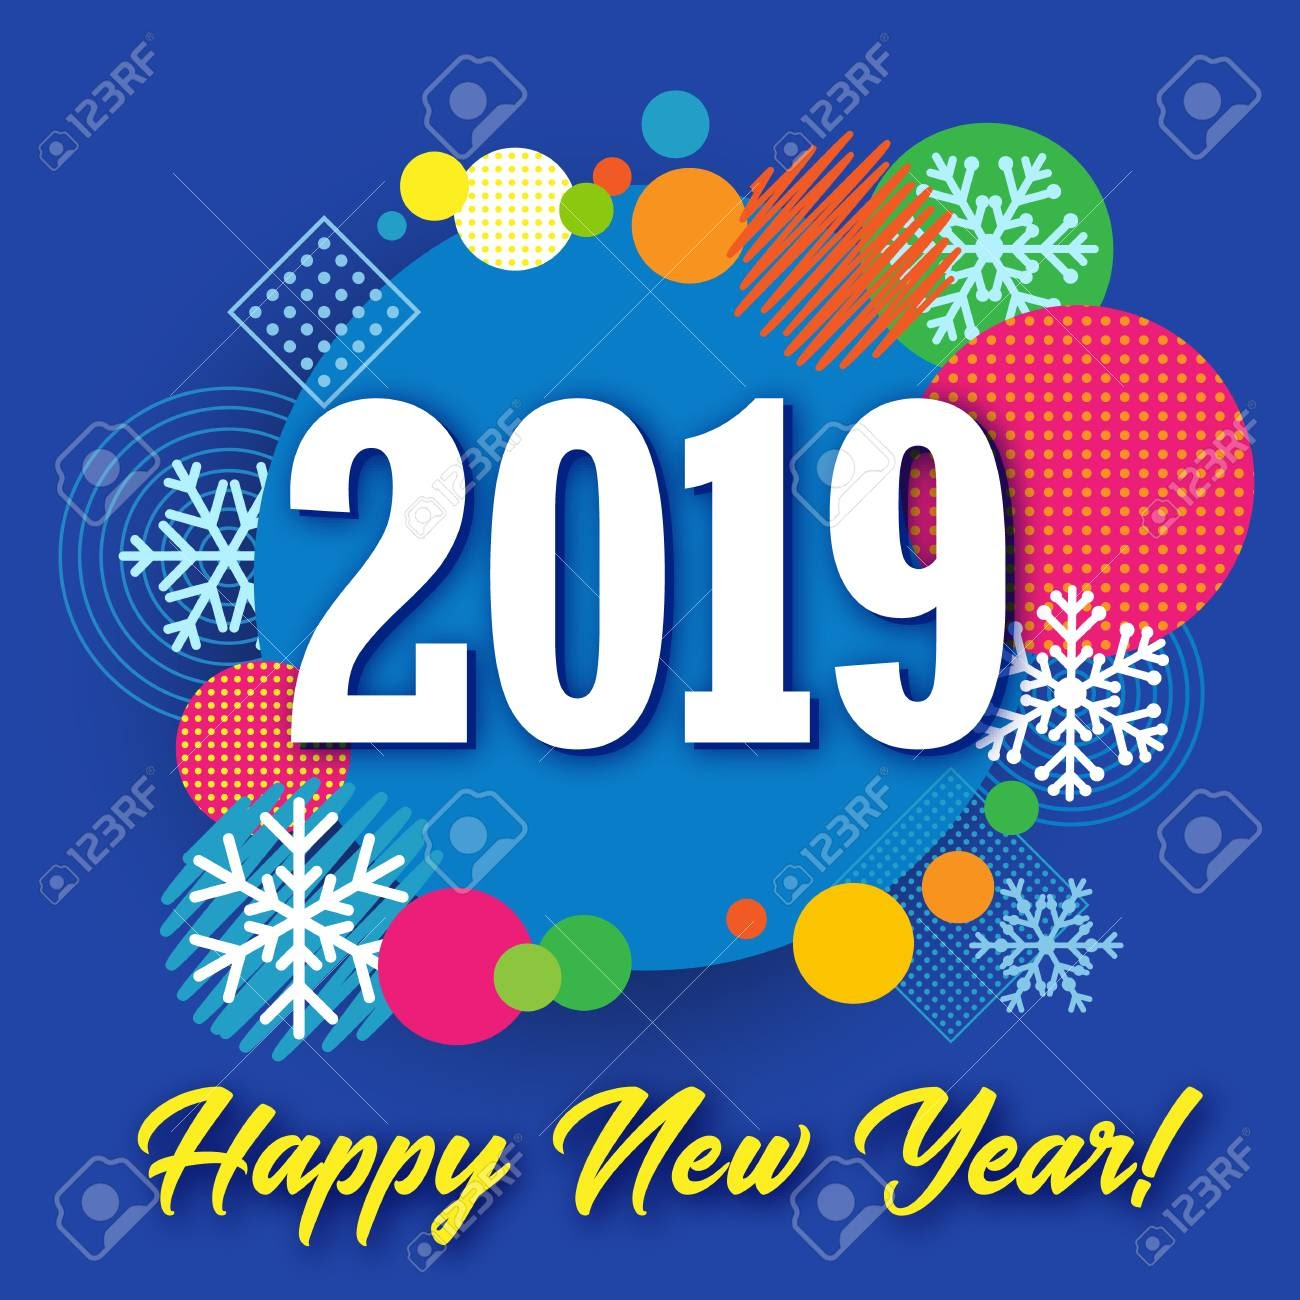 New Year 2019 wallpaper hd images wishes New Year wallpaper quotes ...